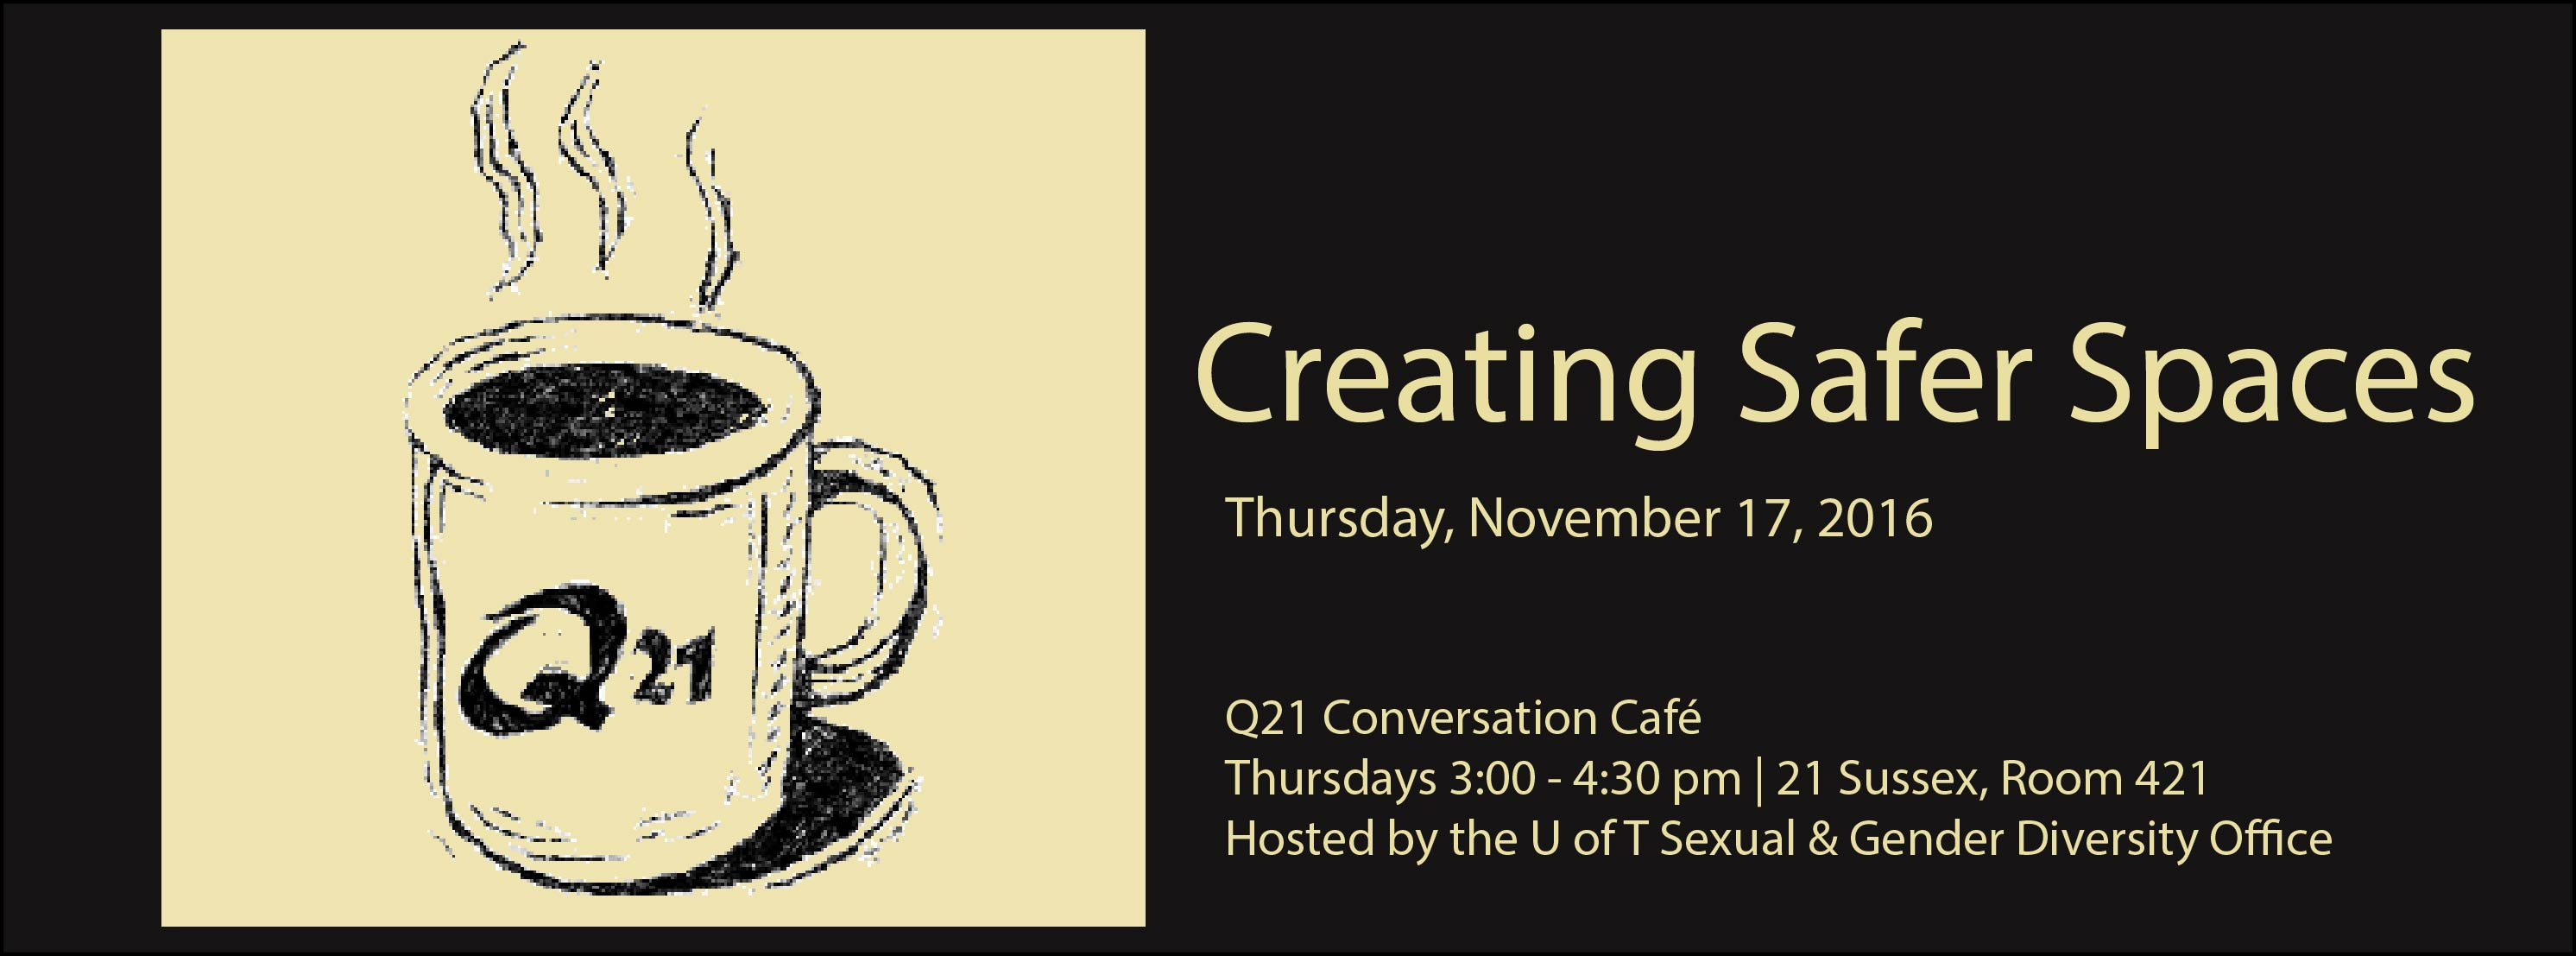 q21-creating-safer-spaces